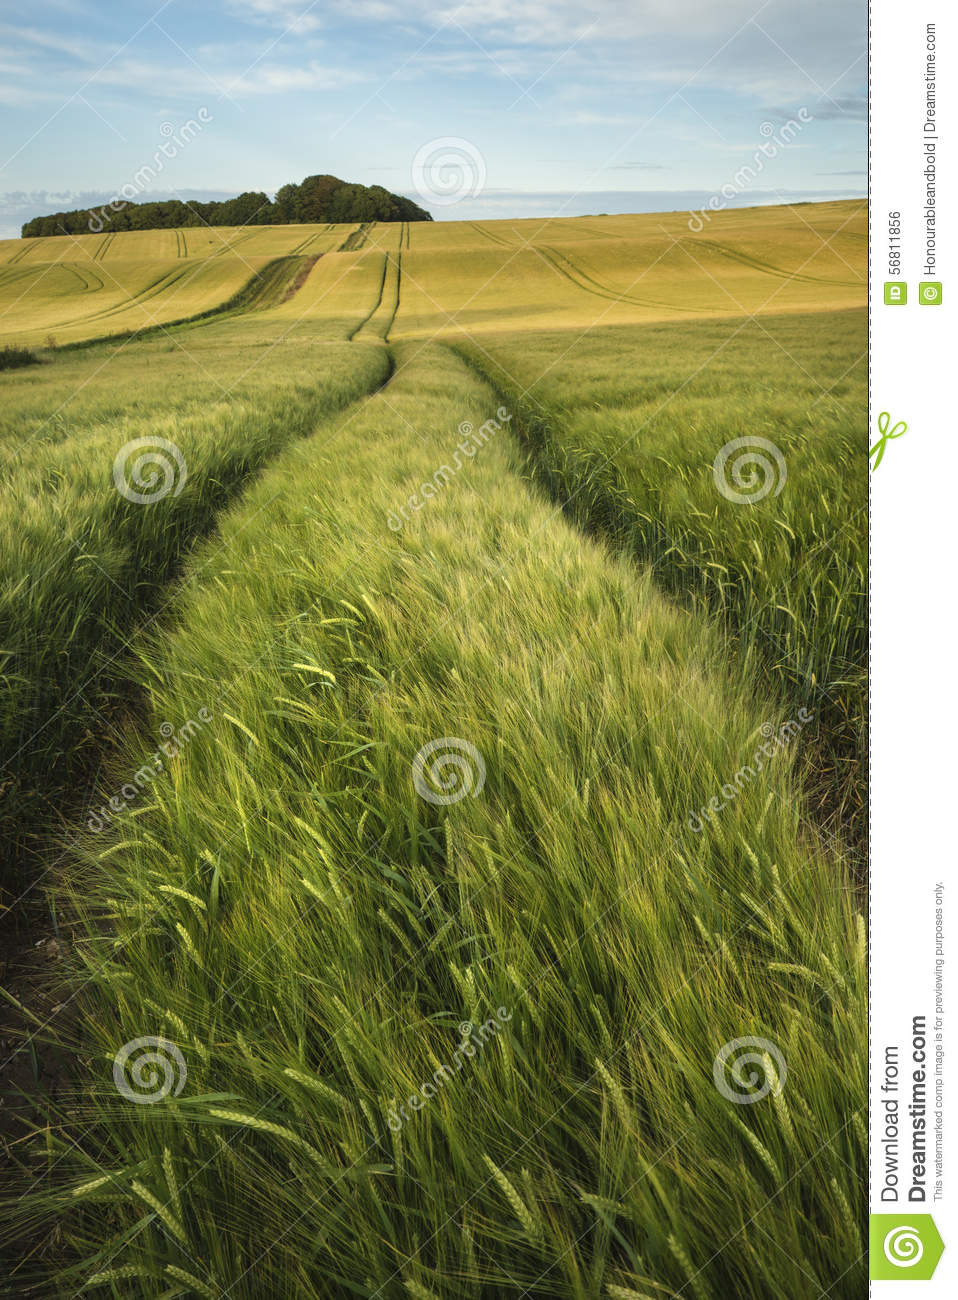 Summer Landscape Over Agricultural Farm Field Of Crops In